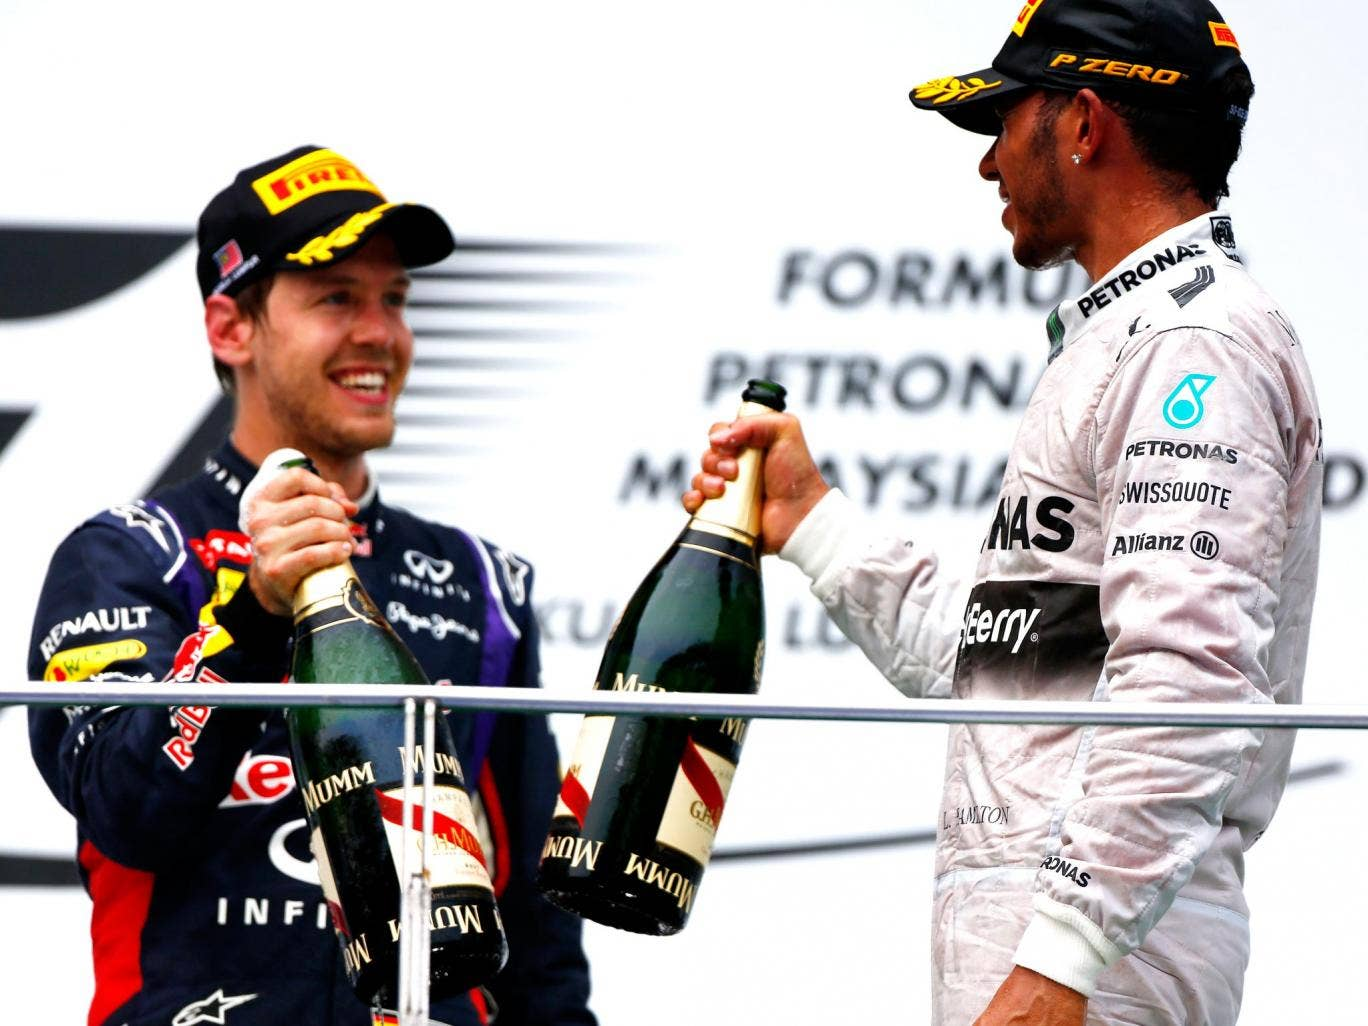 Sebastian Vettel has warned Mercedes that Red Bull are on the up and will be challenging them for race wins soon enough